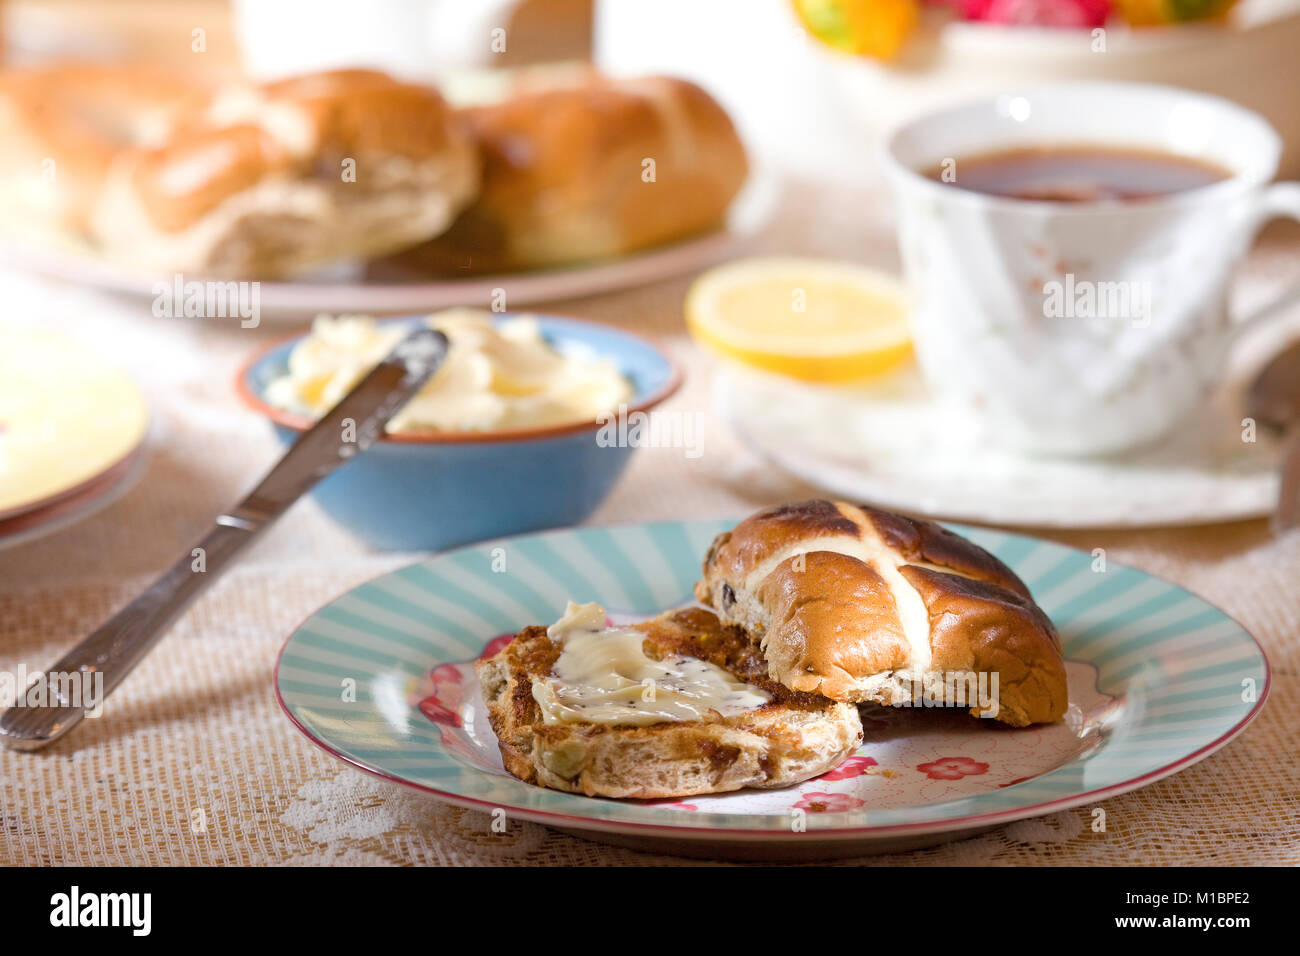 Fresh Hot Cross Buns with melted butter - Stock Image